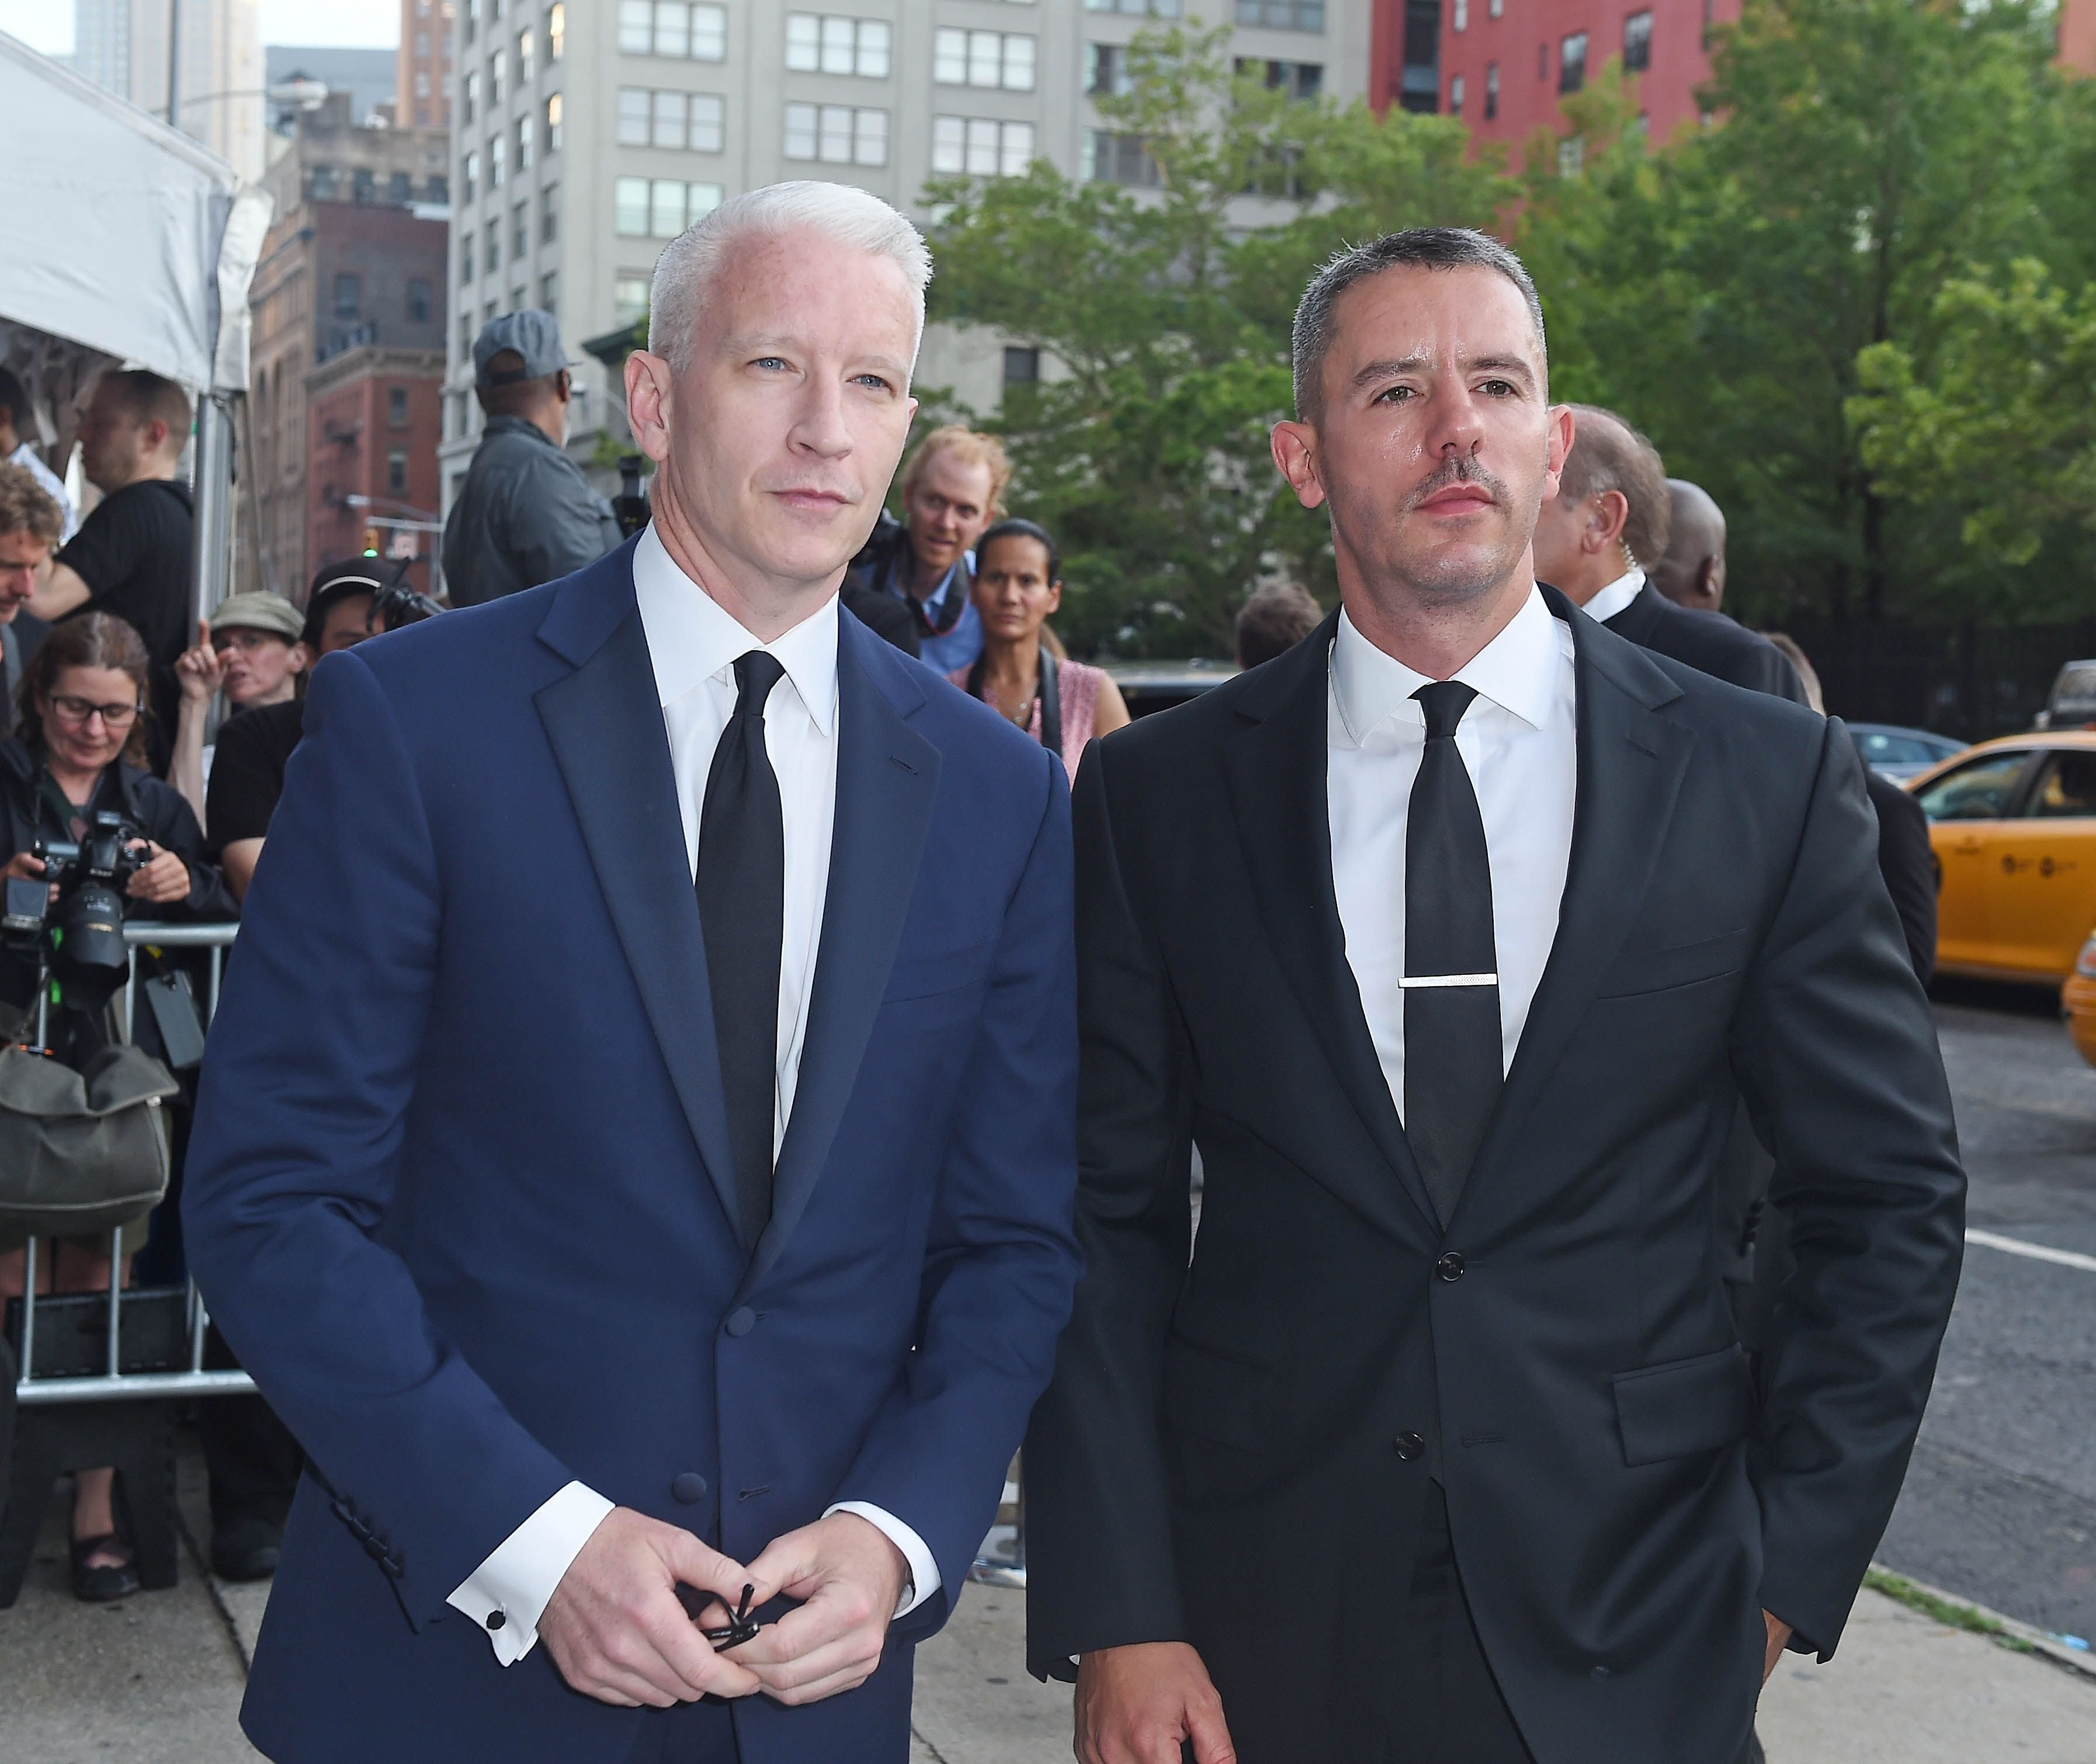 Anderson Cooper and Benjamin Maisani seen arriving at the amfAR Inspiration Gala on June 16, 2015, in New York City | Photo: NCP/Star Max/GC Images/Getty Images